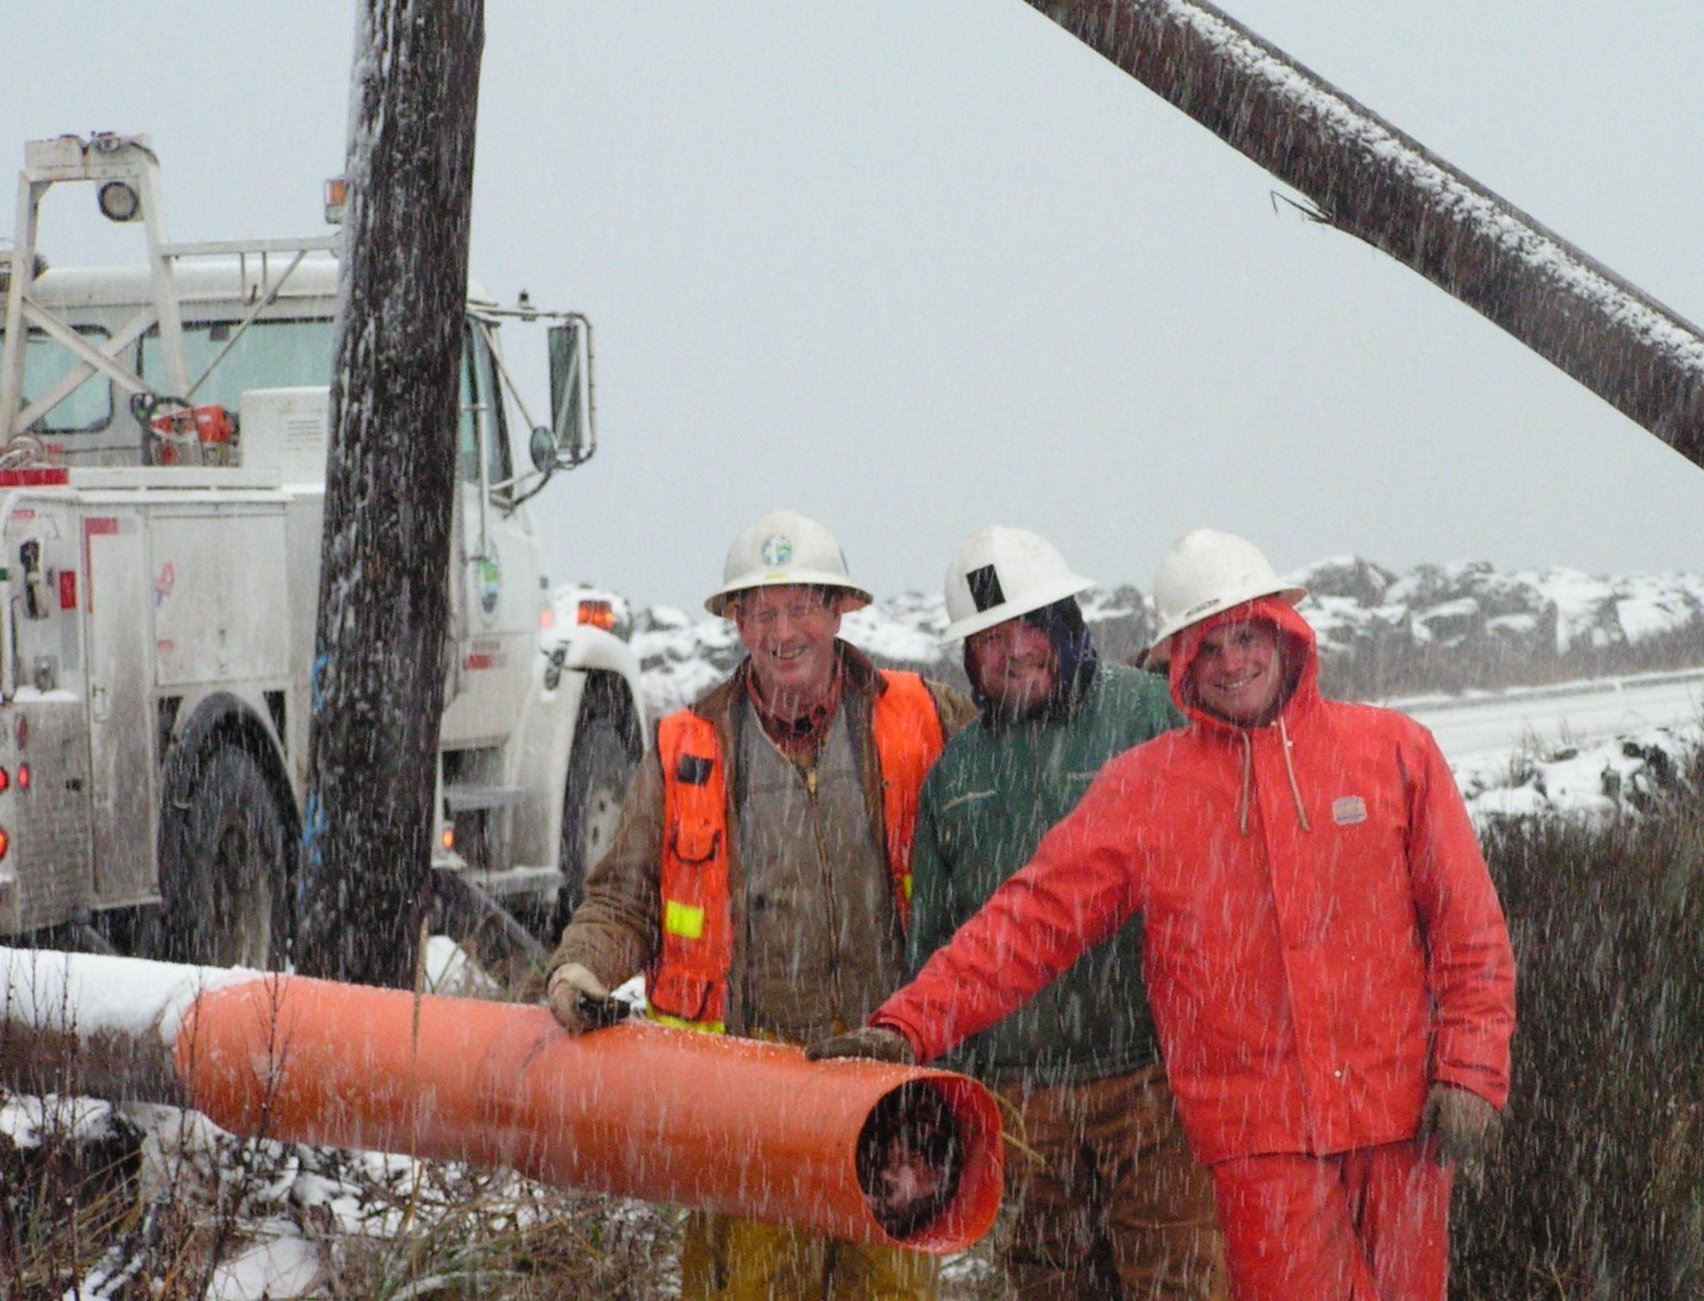 Linemen in snow